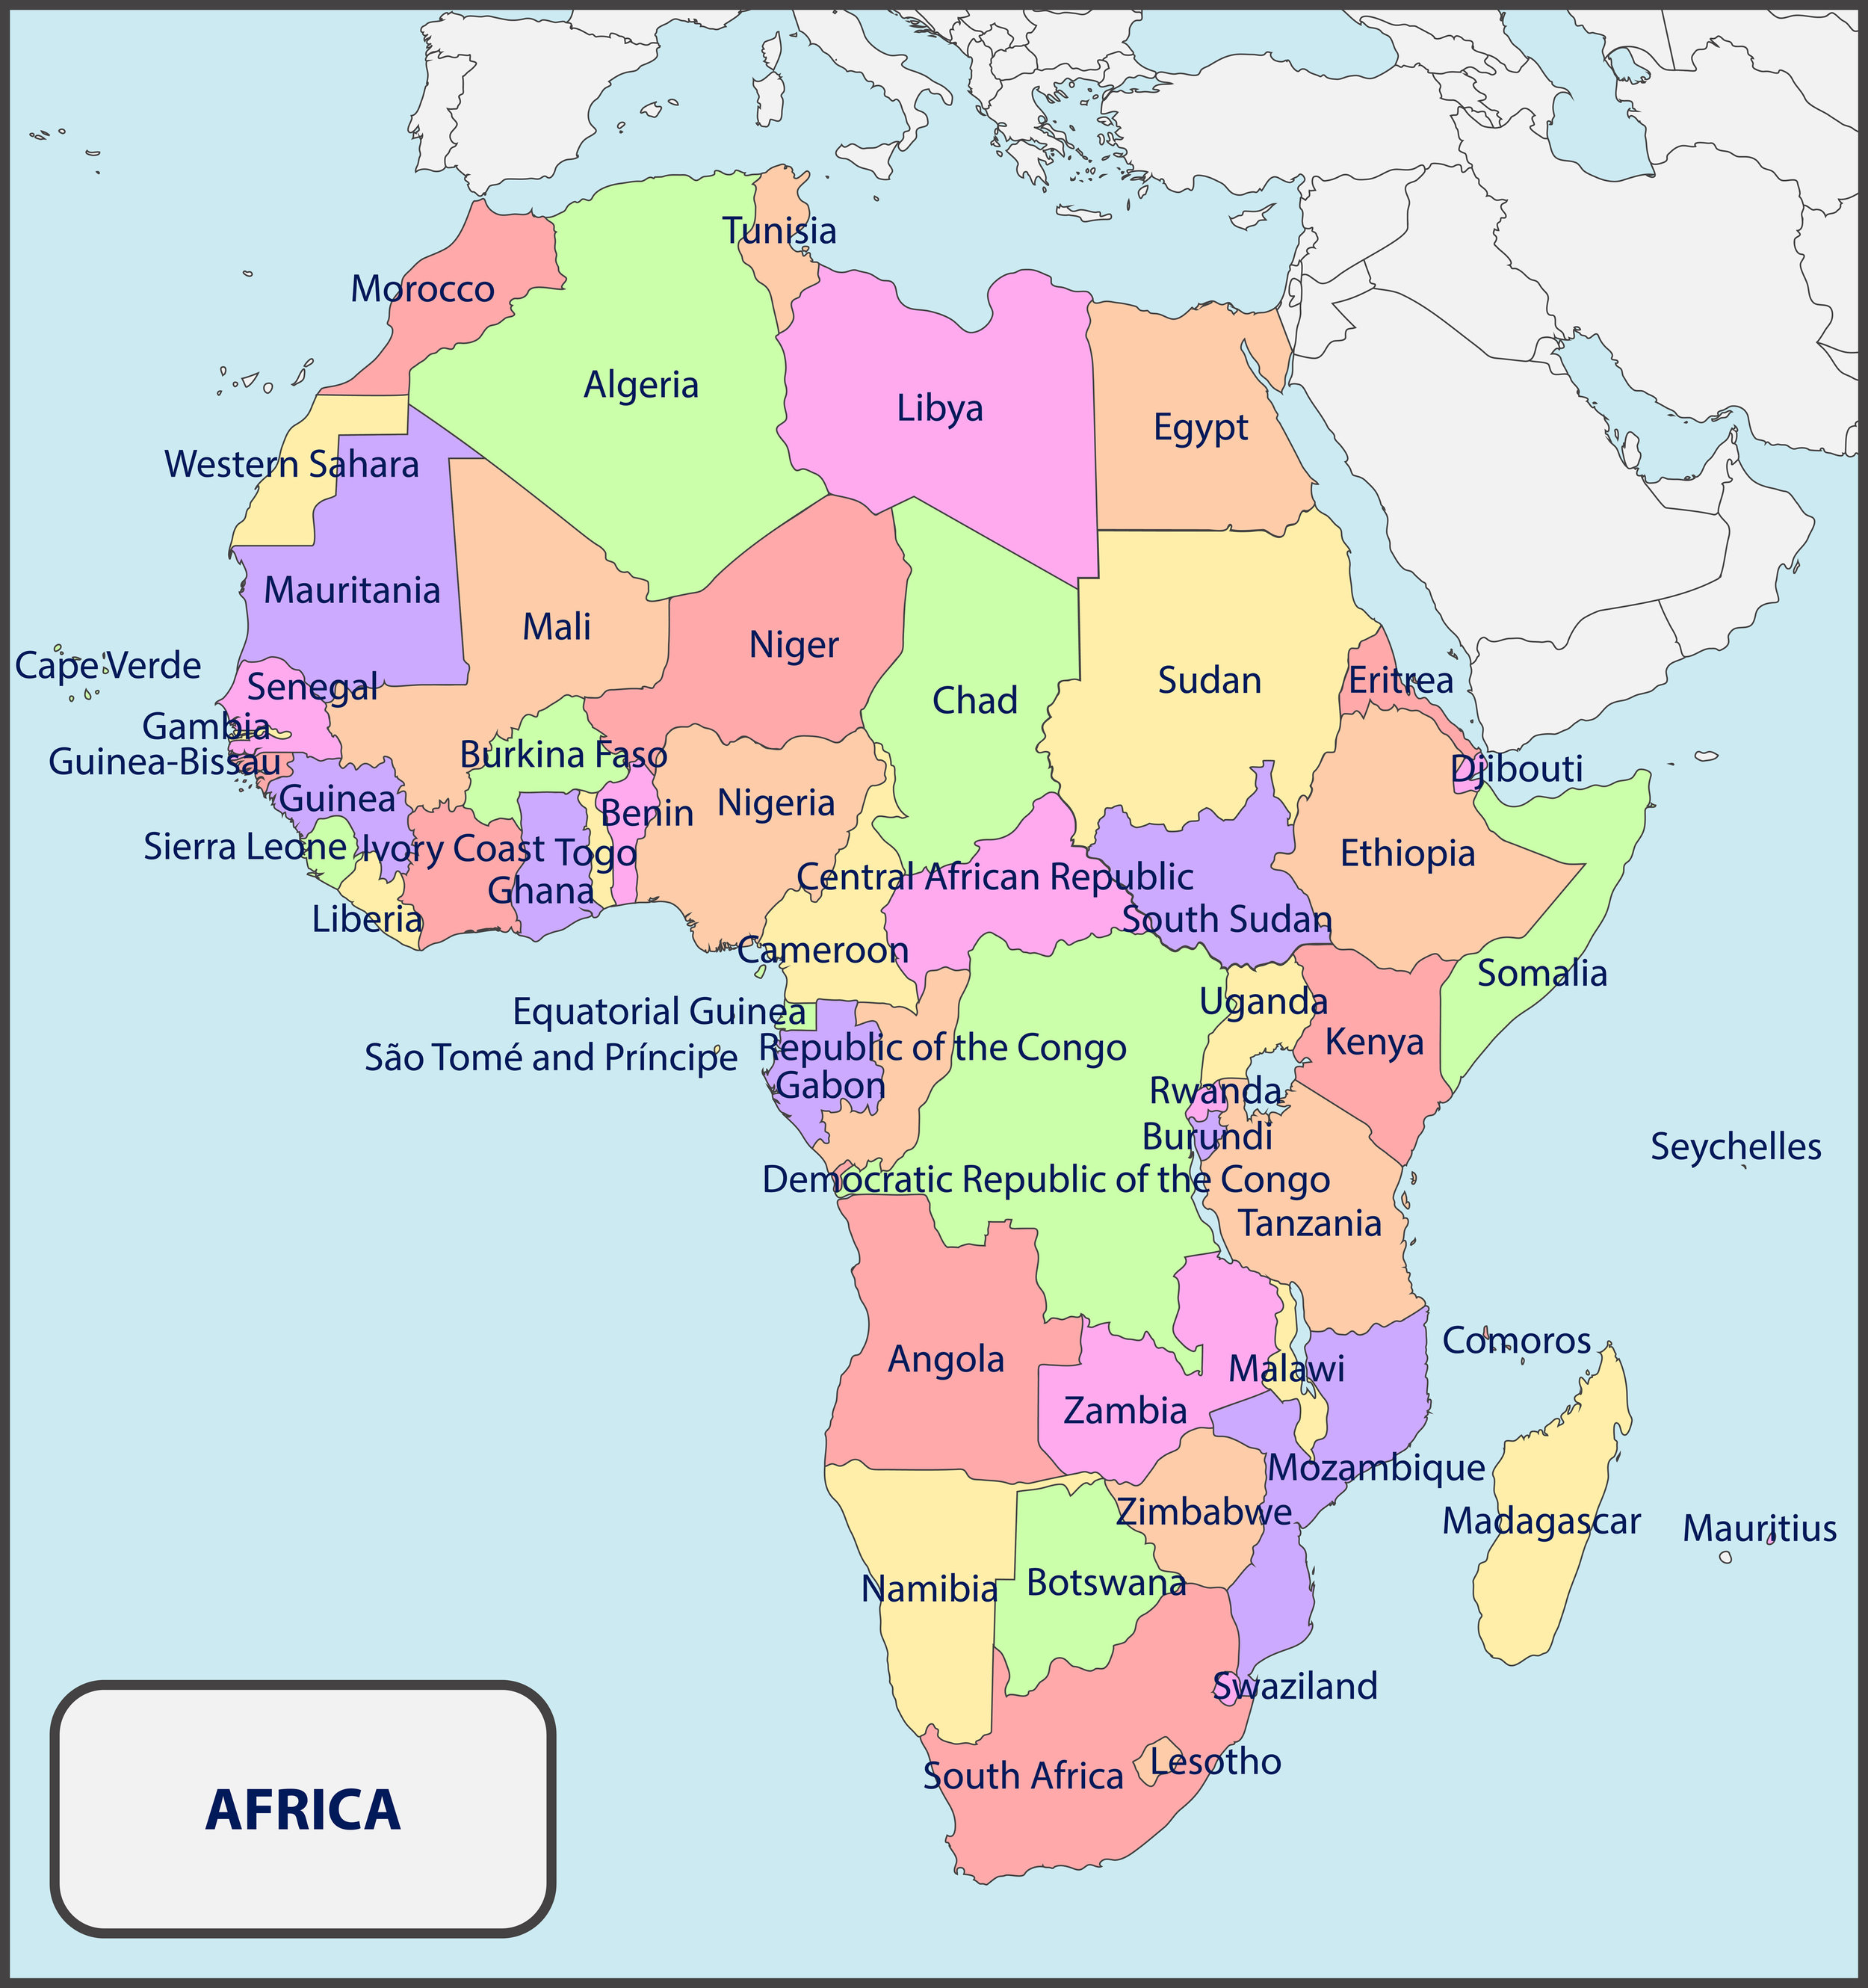 This map of Africa shows the locations of Egypt and Ethiopia on the continent.